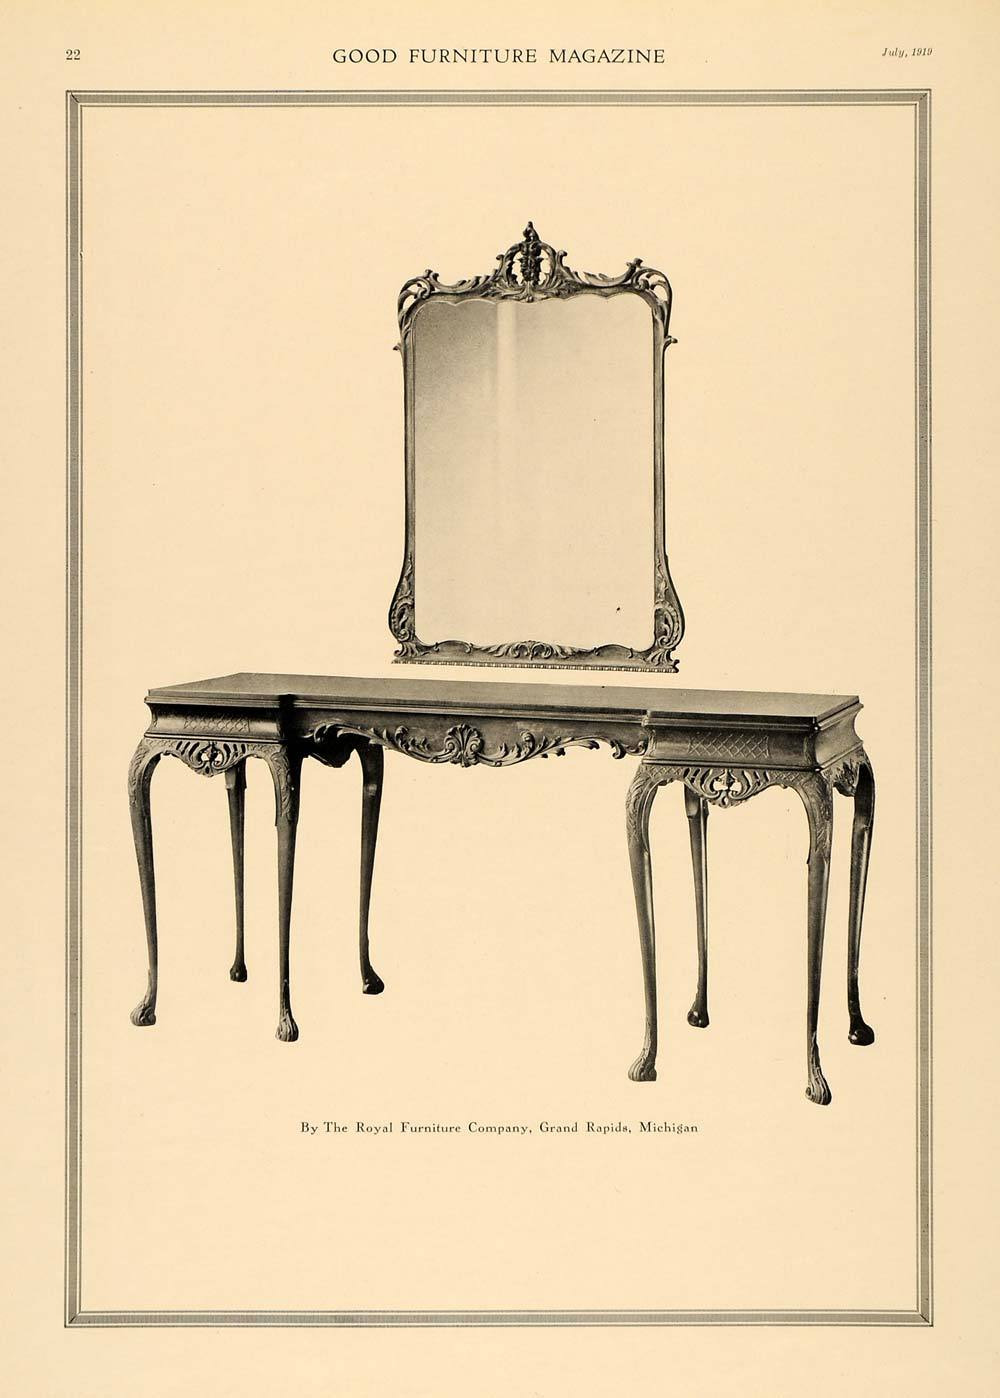 1919 ad royal furniture home decor carved woodwork table mirror grand rapids gf1 253